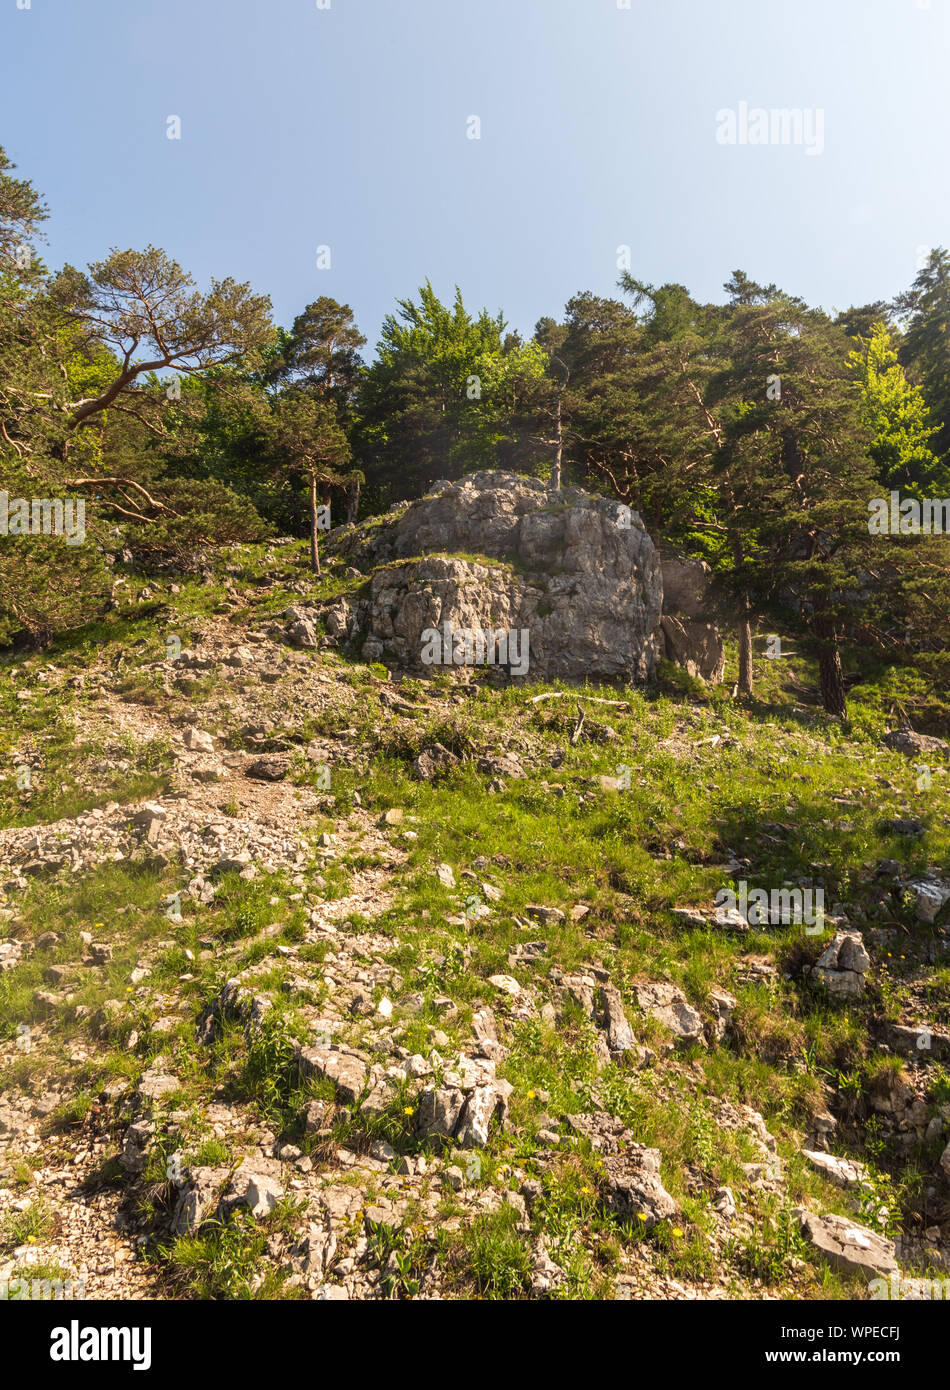 mountain scenery with limestone rocks, grass and trees bellow Tlsta hill in Velka Fatra mountains in Slovakia during springtime day with clear sky Stock Photo